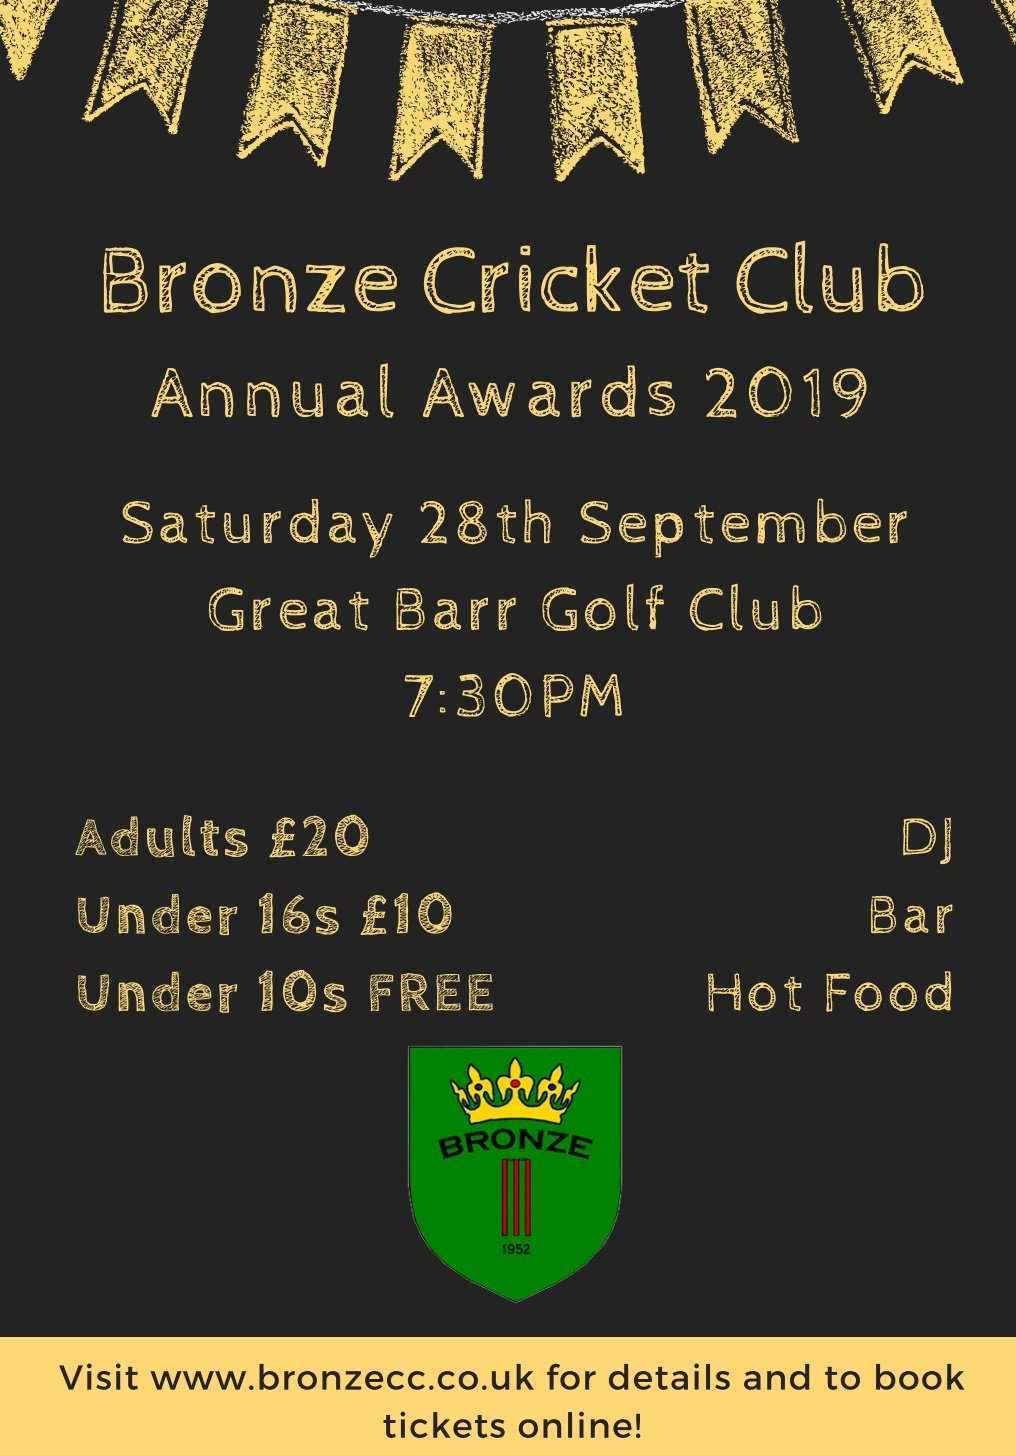 Bronze Cricket Club Annual Awards 2019